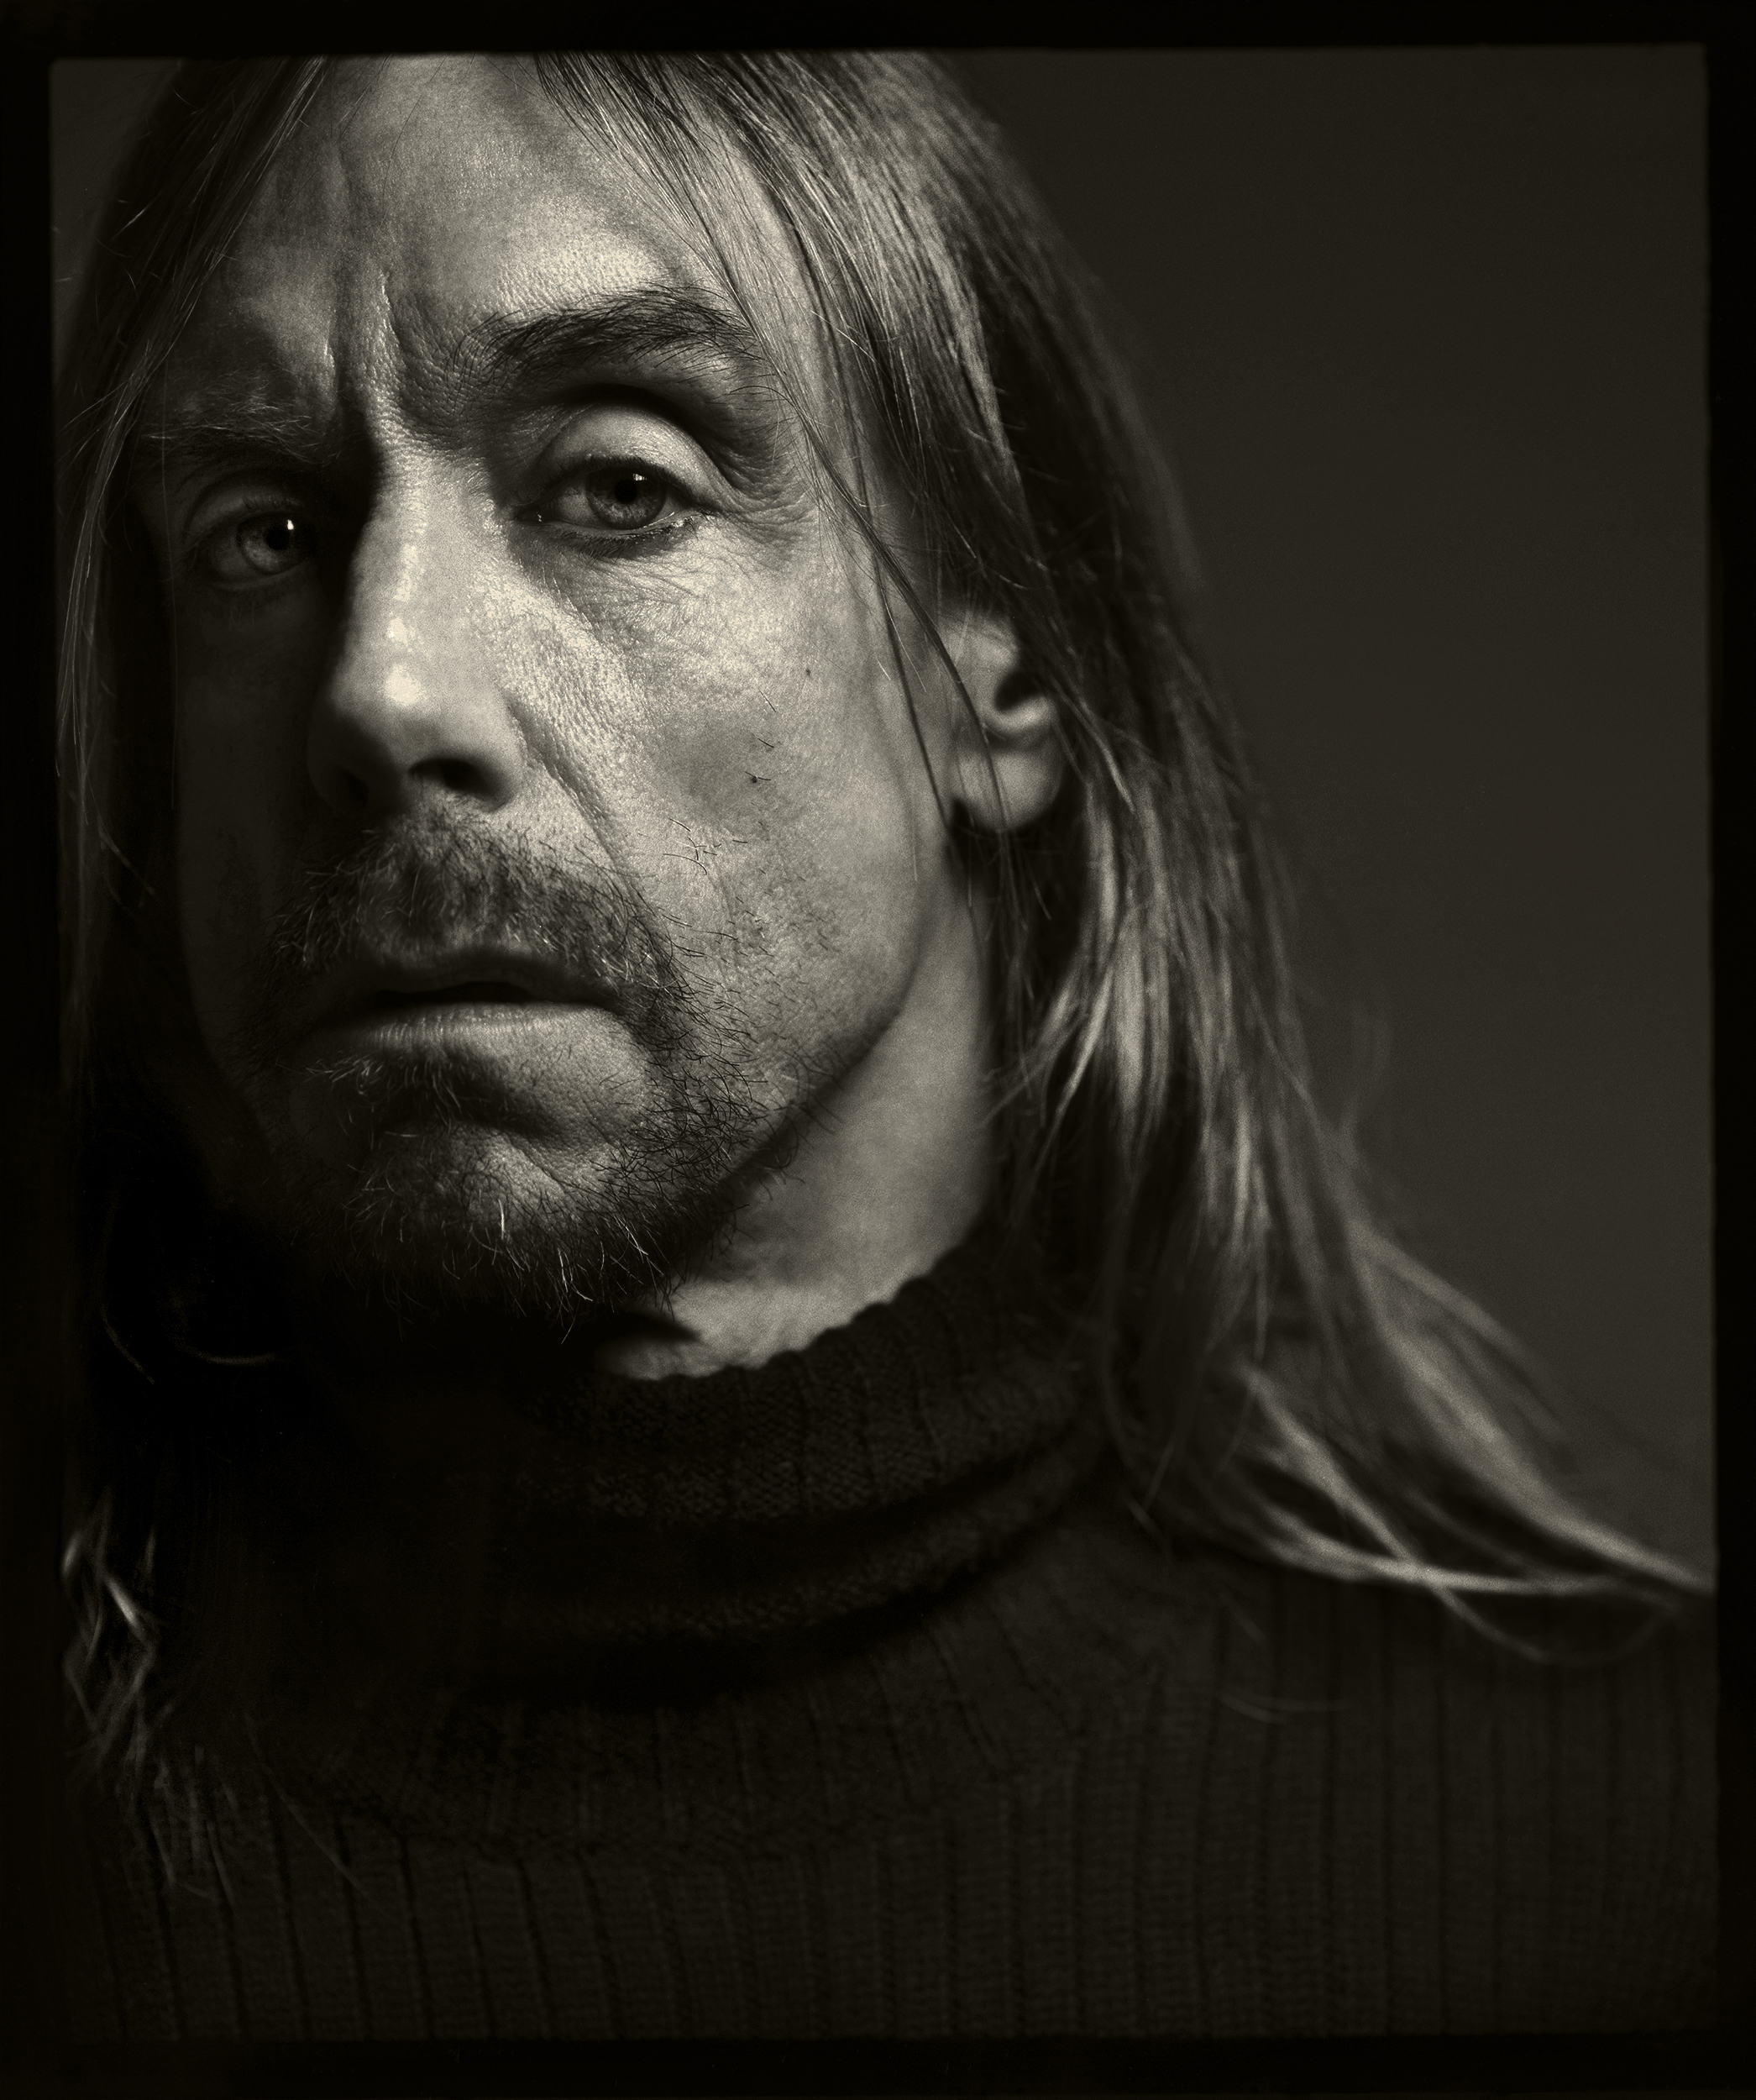 Iggy_Pop_scan_01.jpg